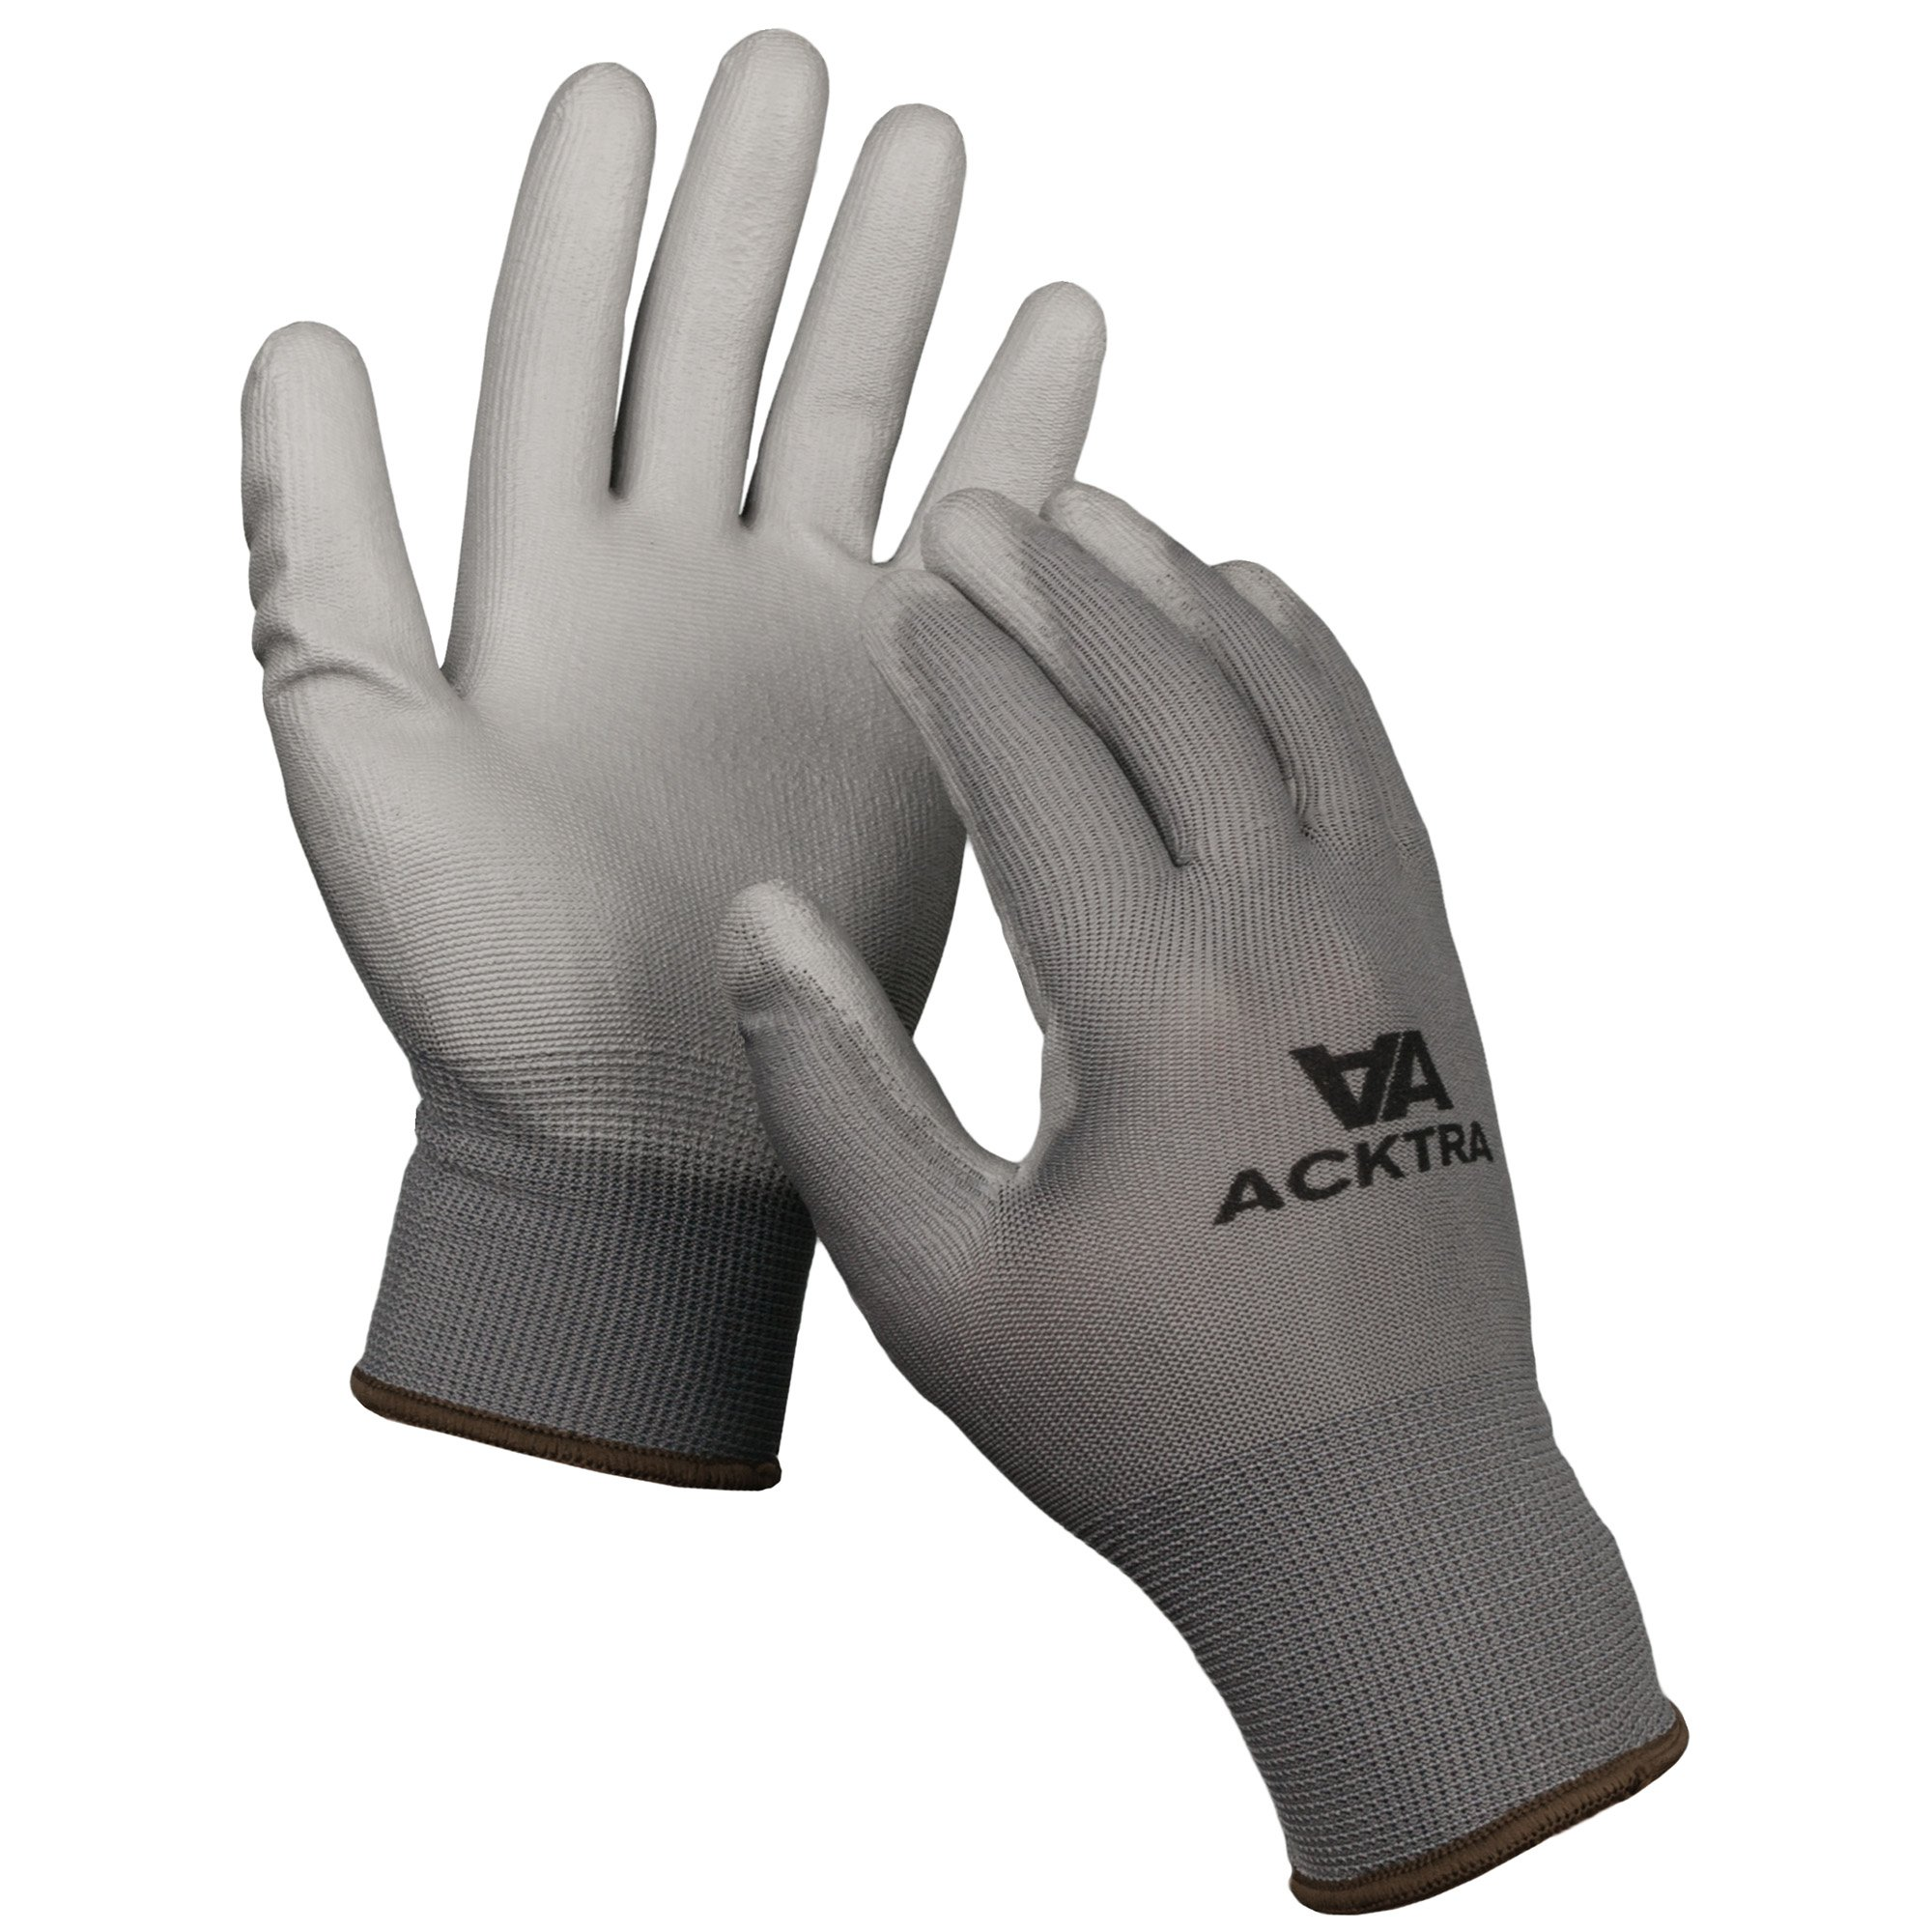 ACKTRA Ultra-Thin Polyurethane (PU) Coated Nylon Safety WORK GLOVES 12 Pairs, Knit Wrist Cuff, for Precision Work, for Men & Women, WG002 Black Polyester, Black Polyurethane, Small 2